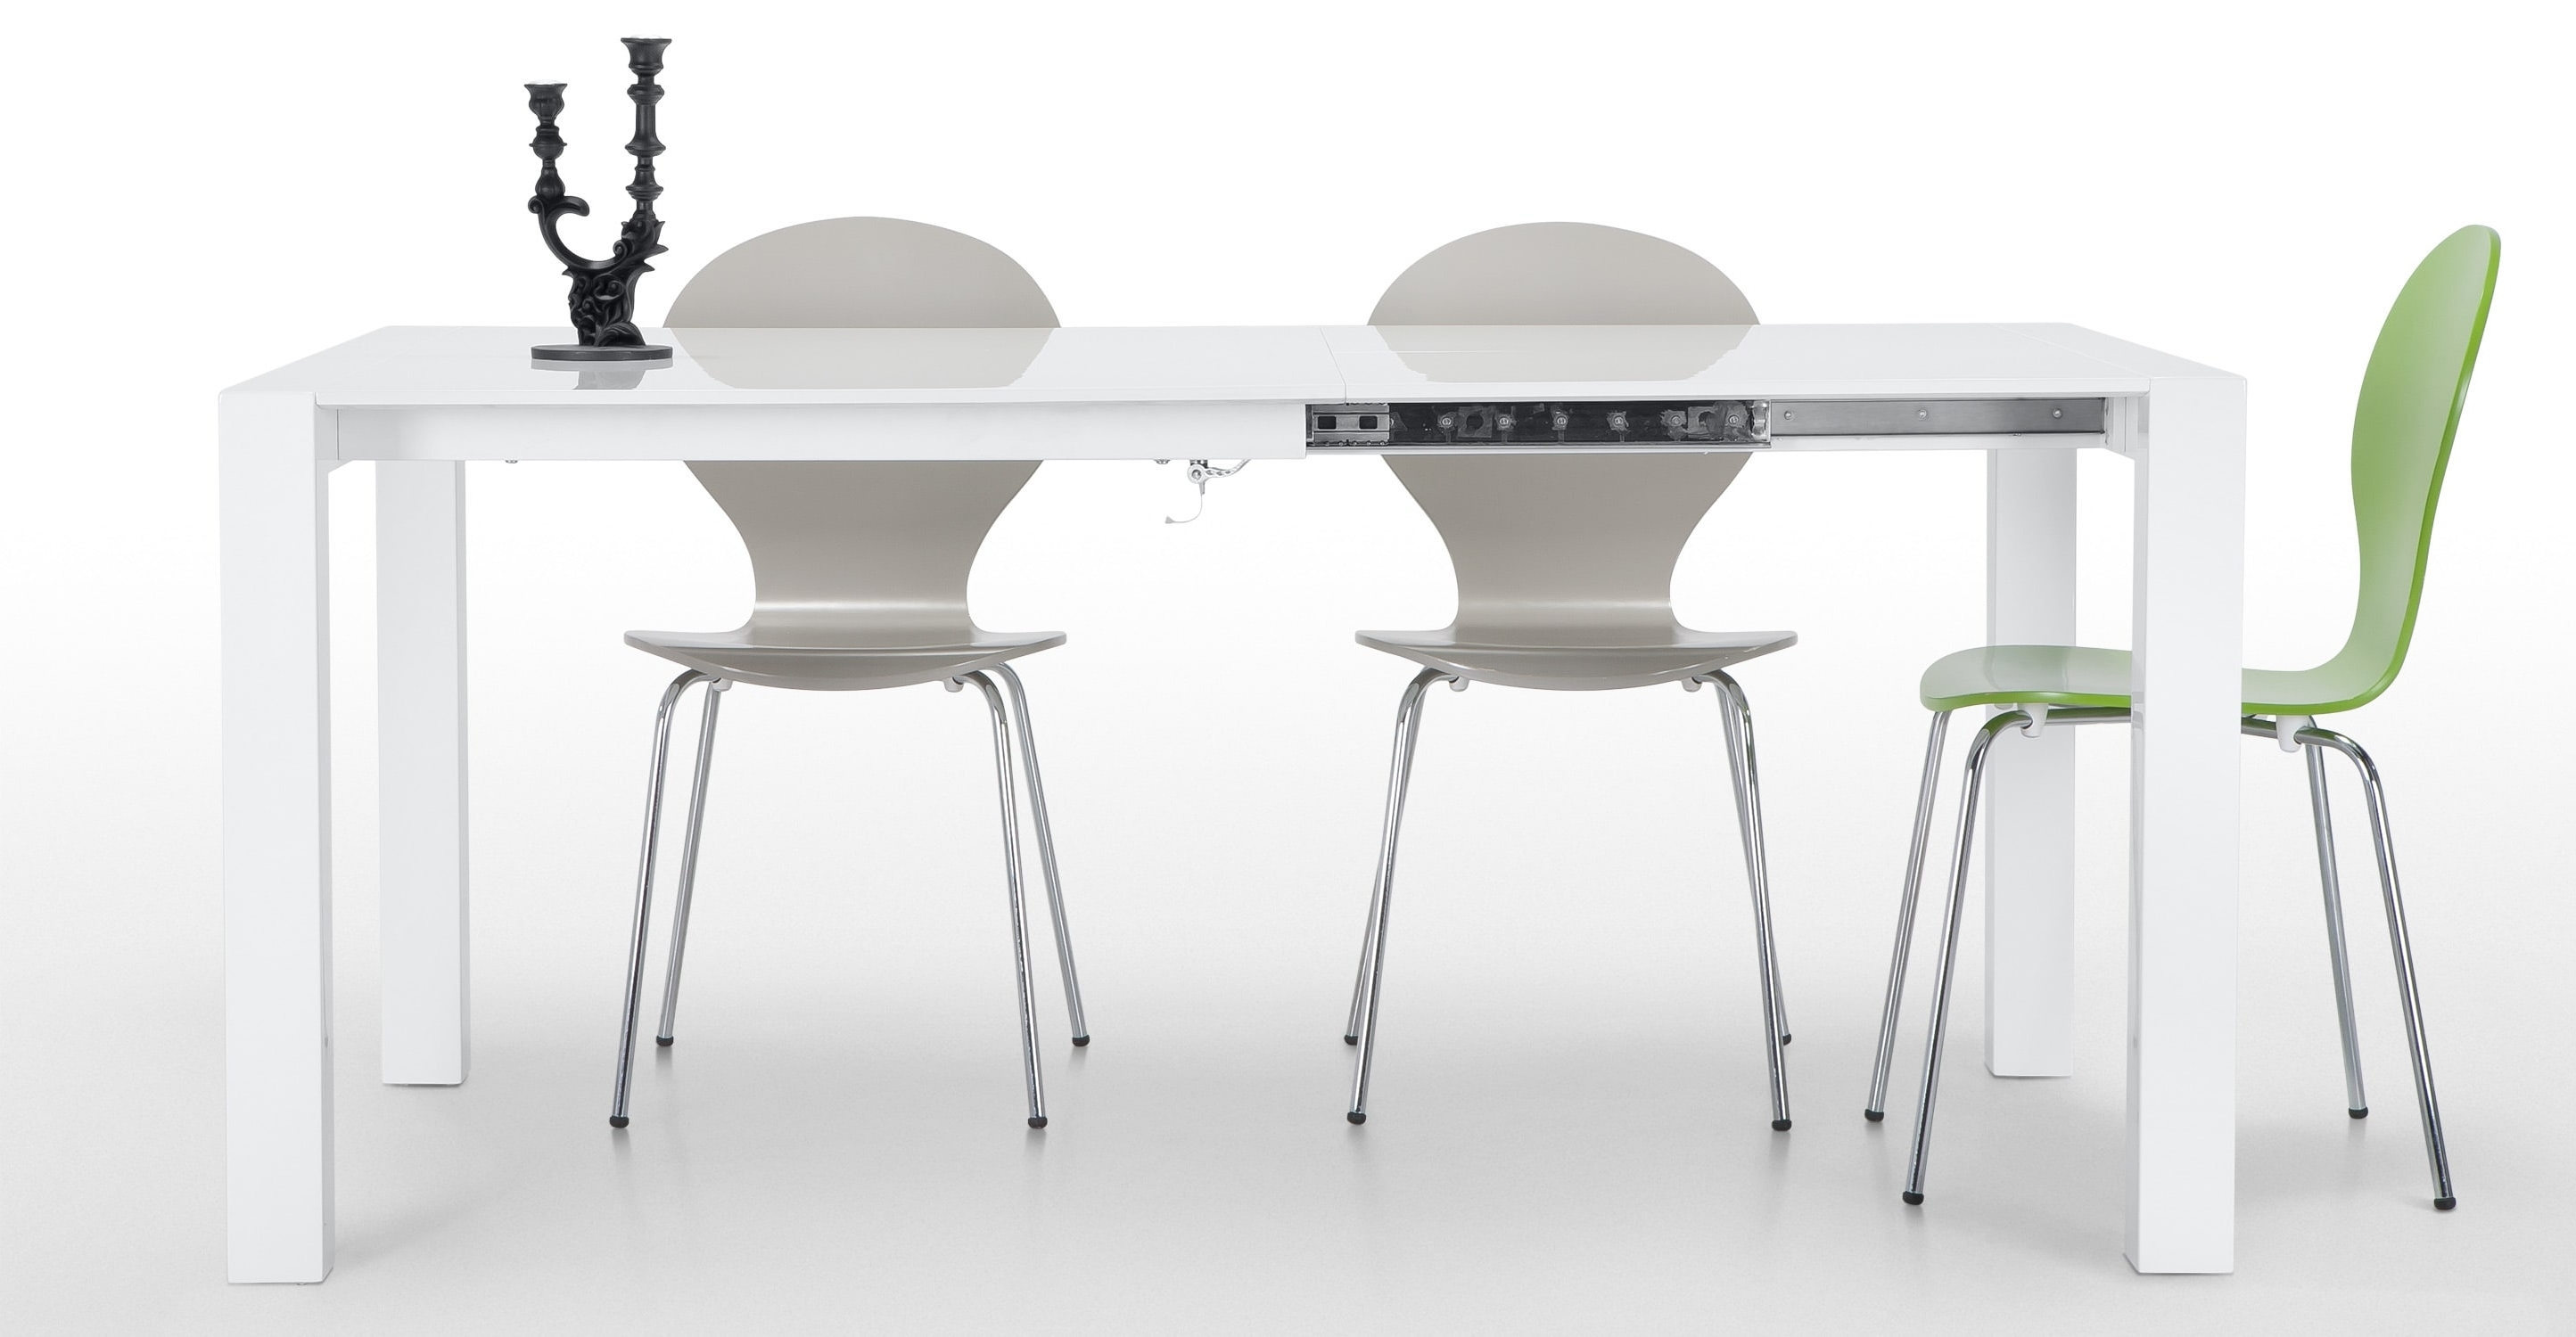 Popular Bramante Square Extending Dining Table, White, White • Sofas Etc Inside White Square Extending Dining Tables (View 7 of 25)